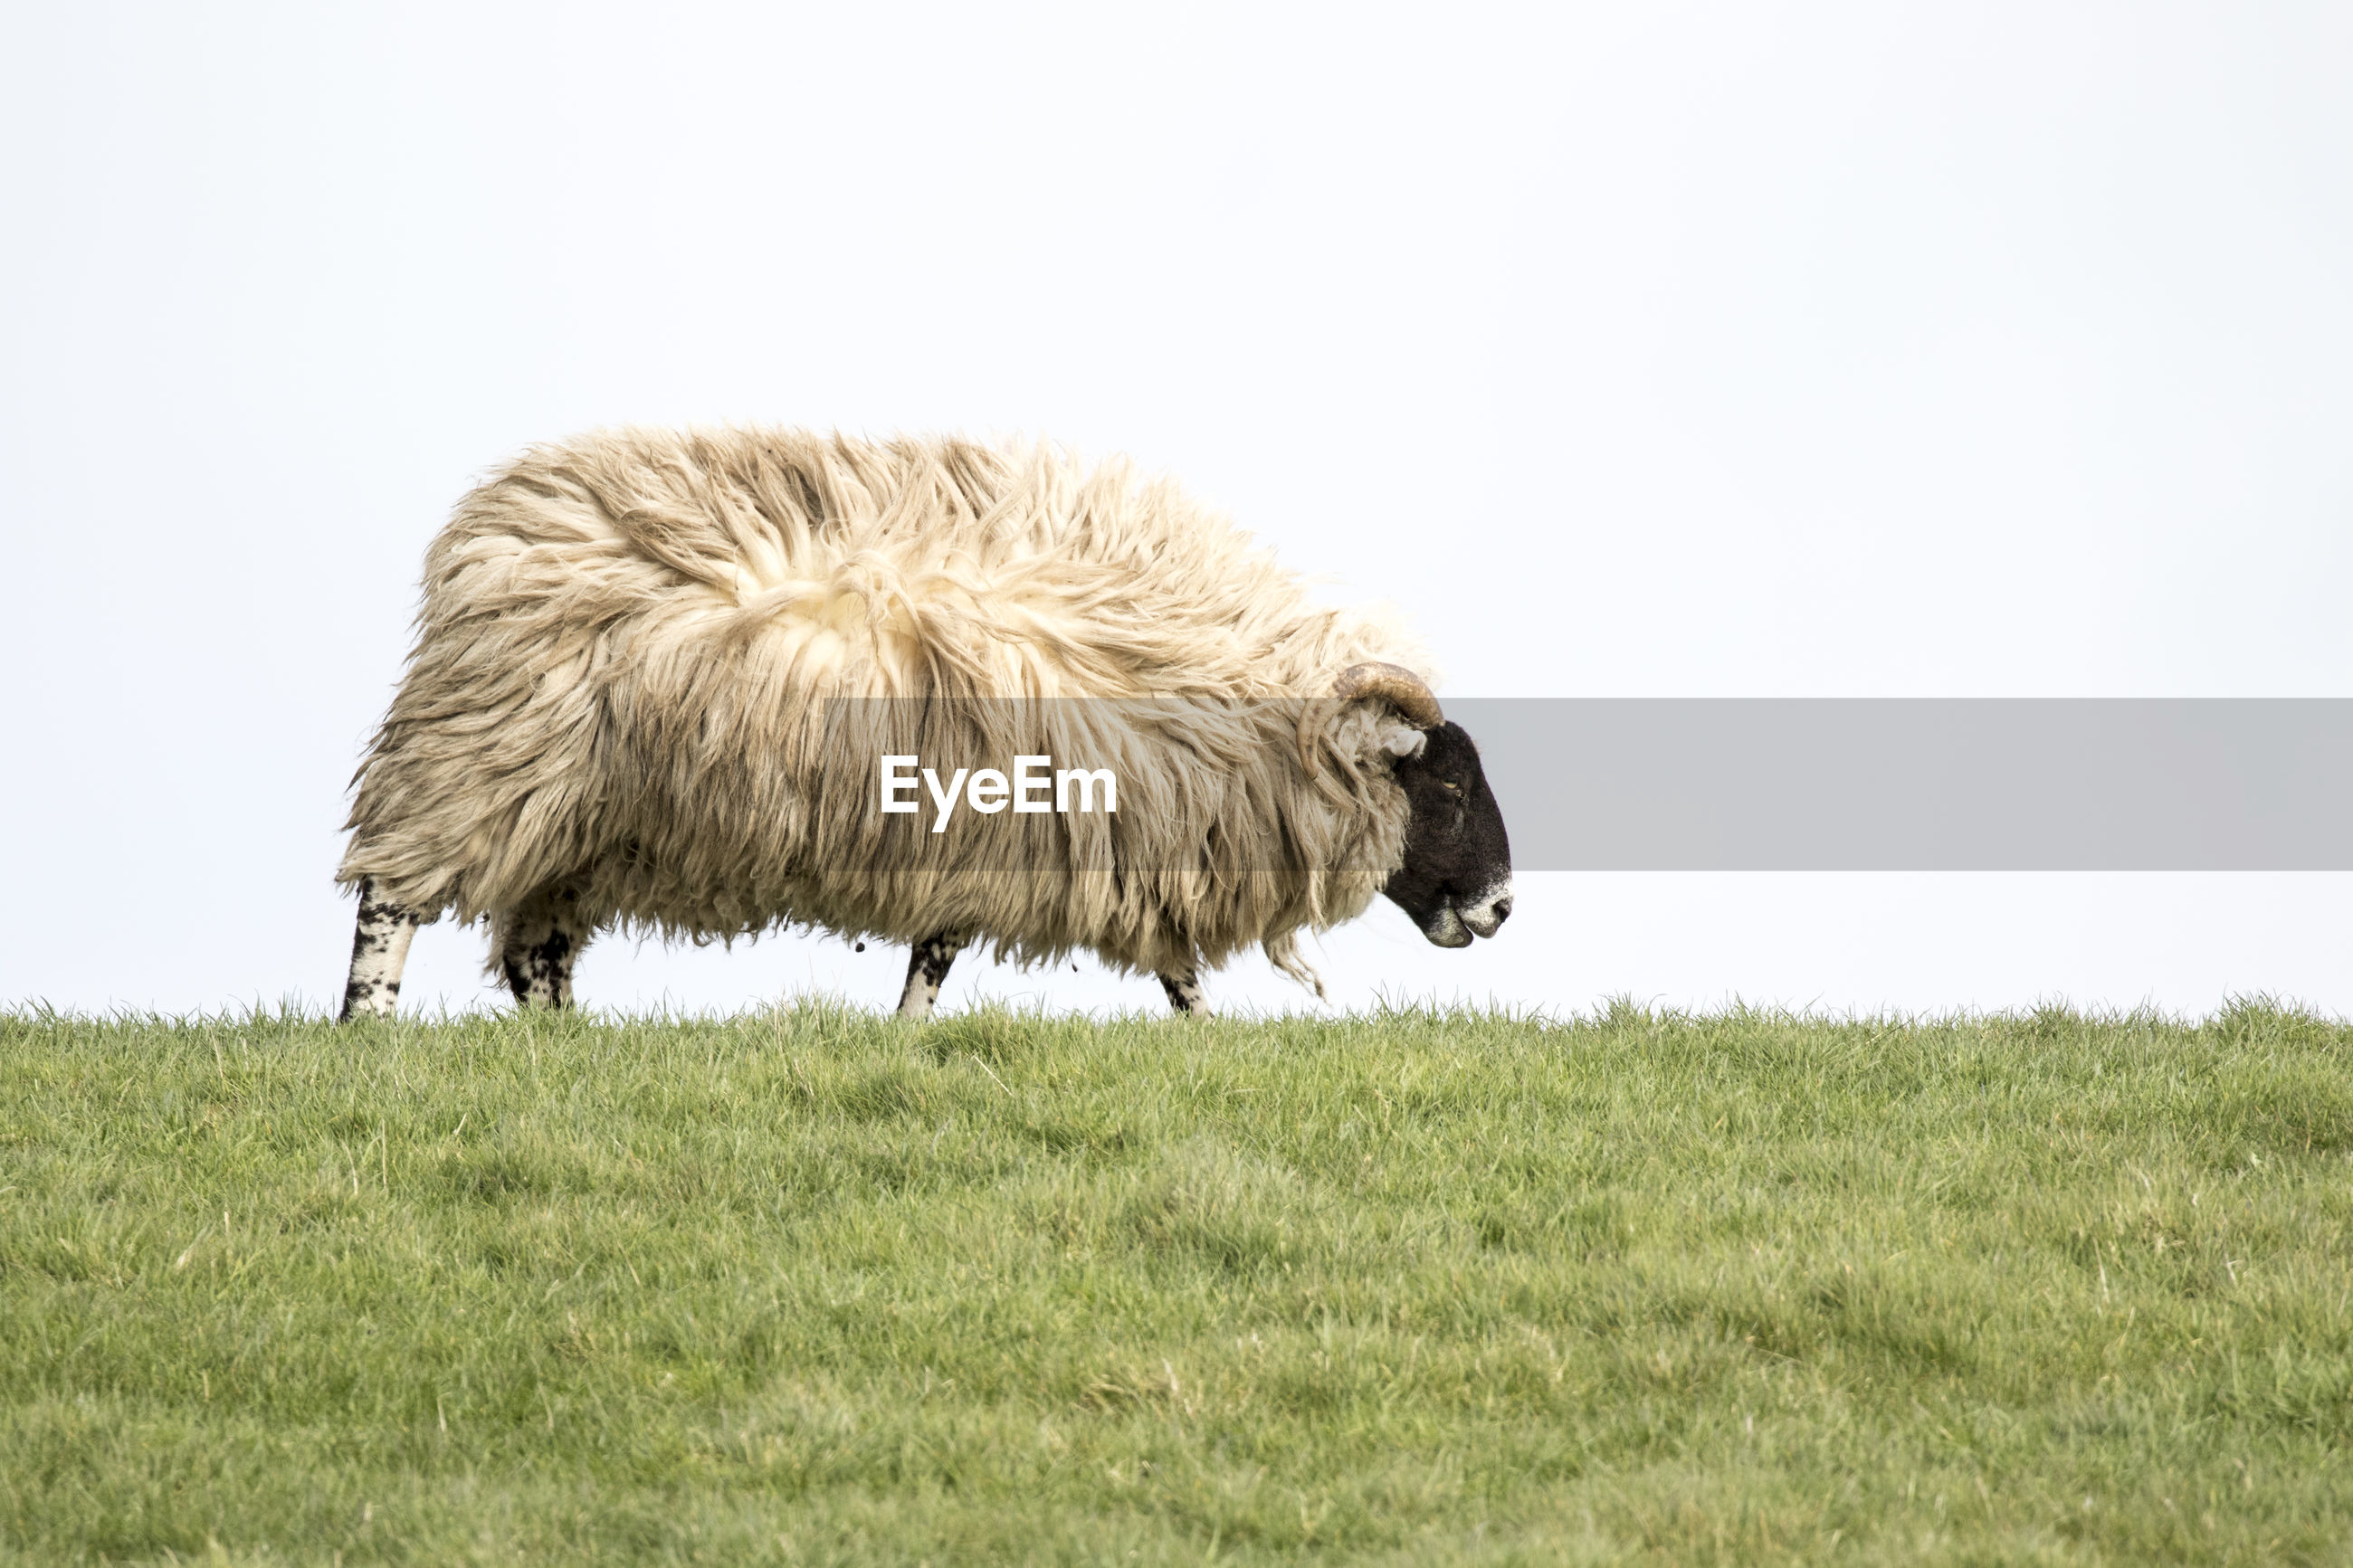 Sheep on field against clear sky